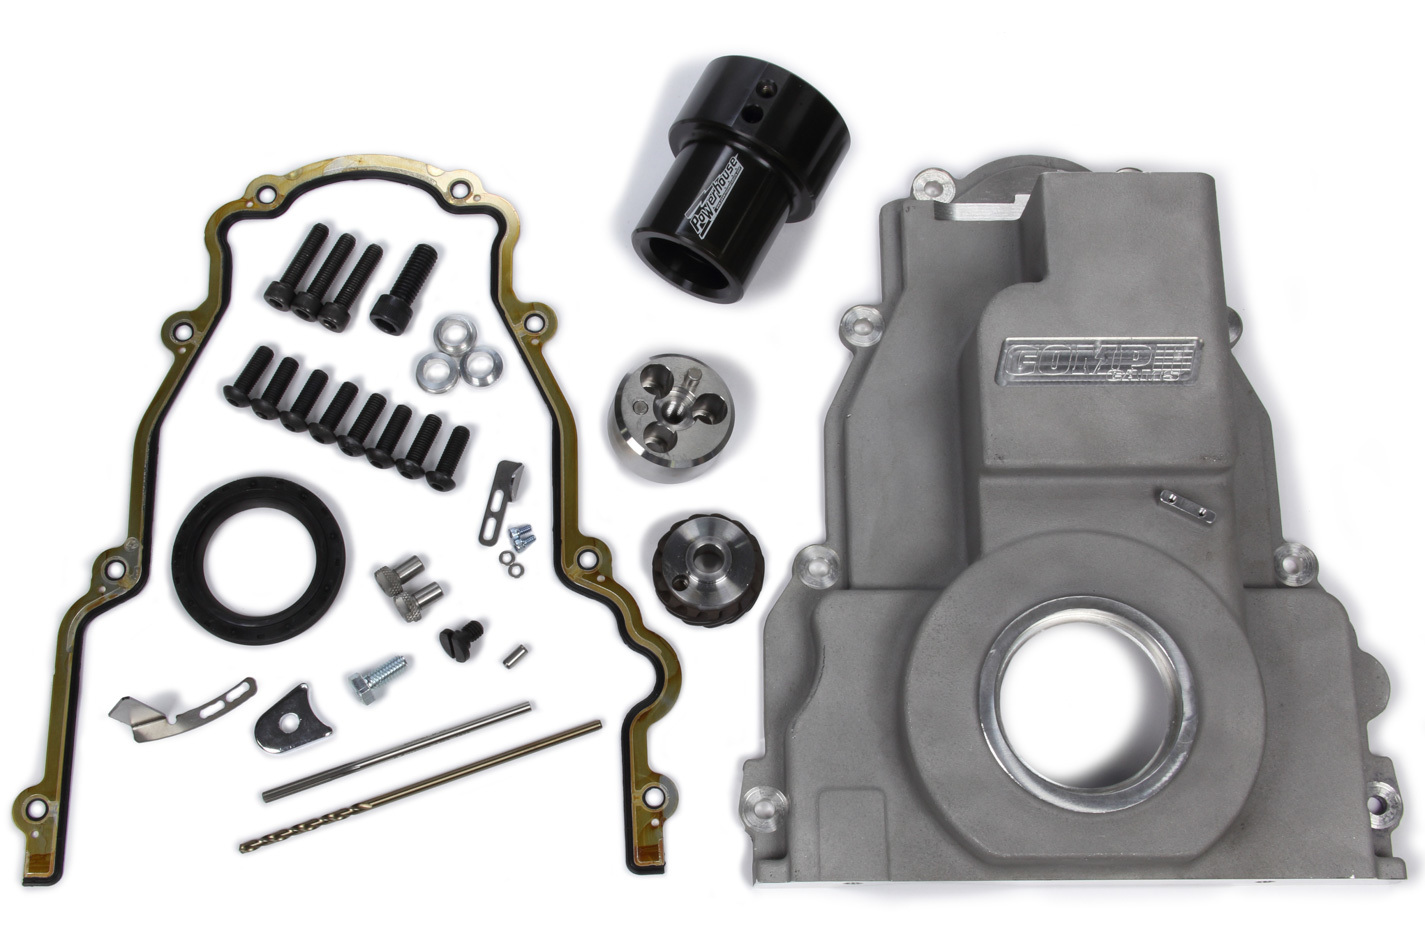 Comp Cams 5481 Timing Cover, Conversion, 1 Piece, Gaskets / Hardware / Seal Included, Aluminum, Natural, Small Block Ford Distributor, GM LS-Series, Kit